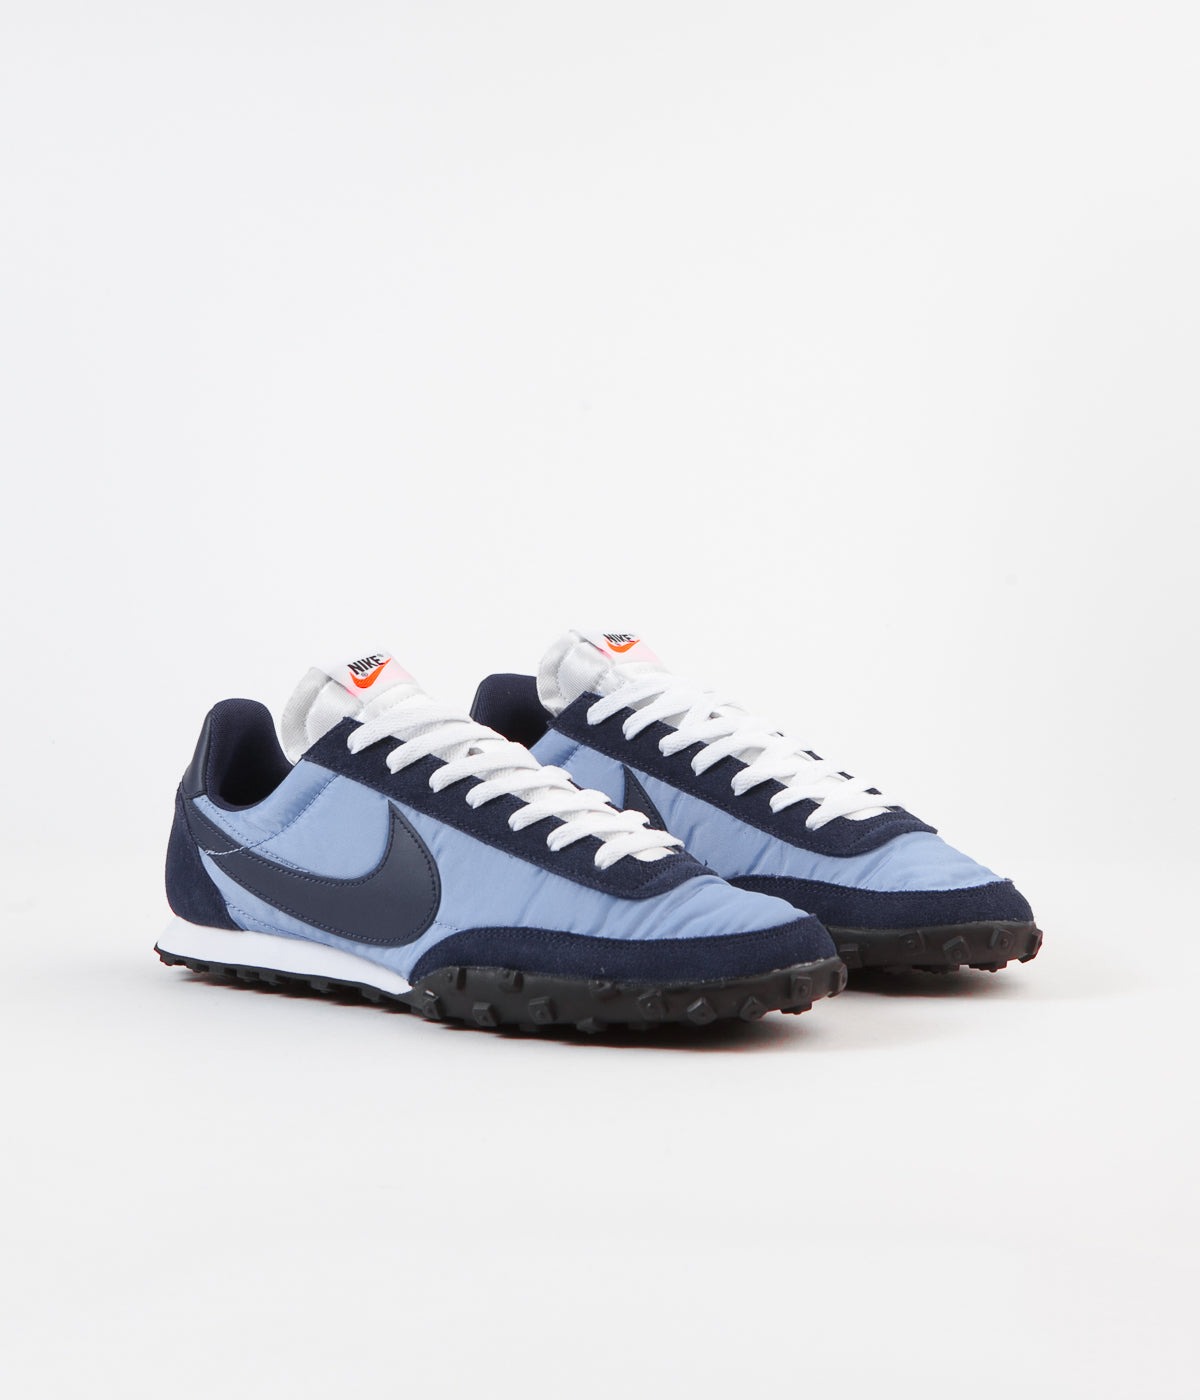 Arábica escapar audición  Nike Waffle Racer Shoes - Light Blue / Midnight Navy - Midnight Navy |  Always in Colour